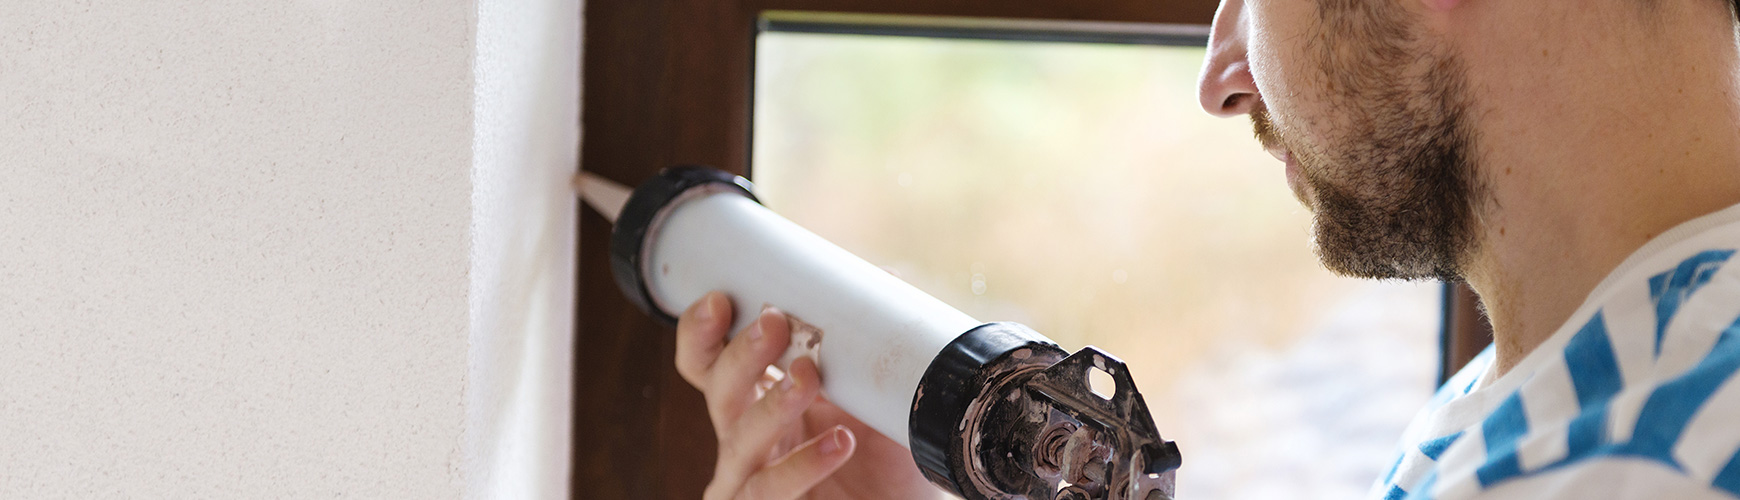 caulking windows to seal air leaks